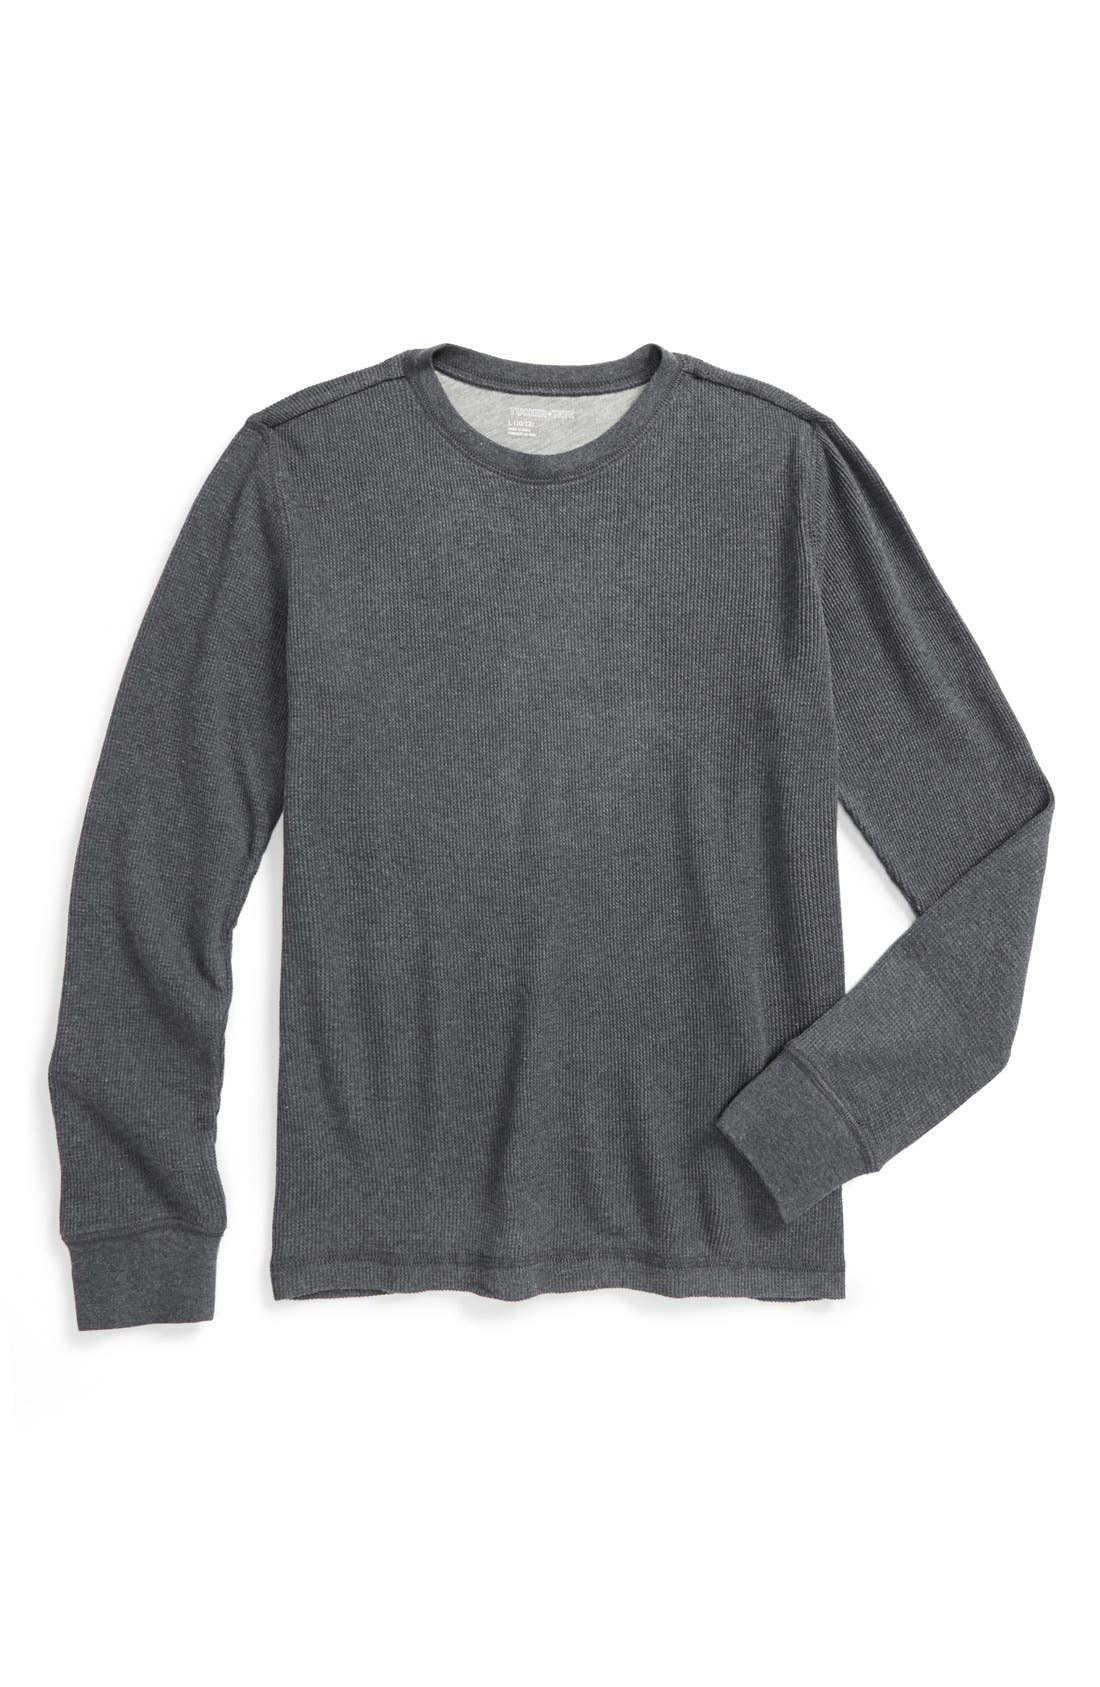 Long Sleeve Thermal T-Shirt,                         Main,                         color, Grey Charcoal Heather